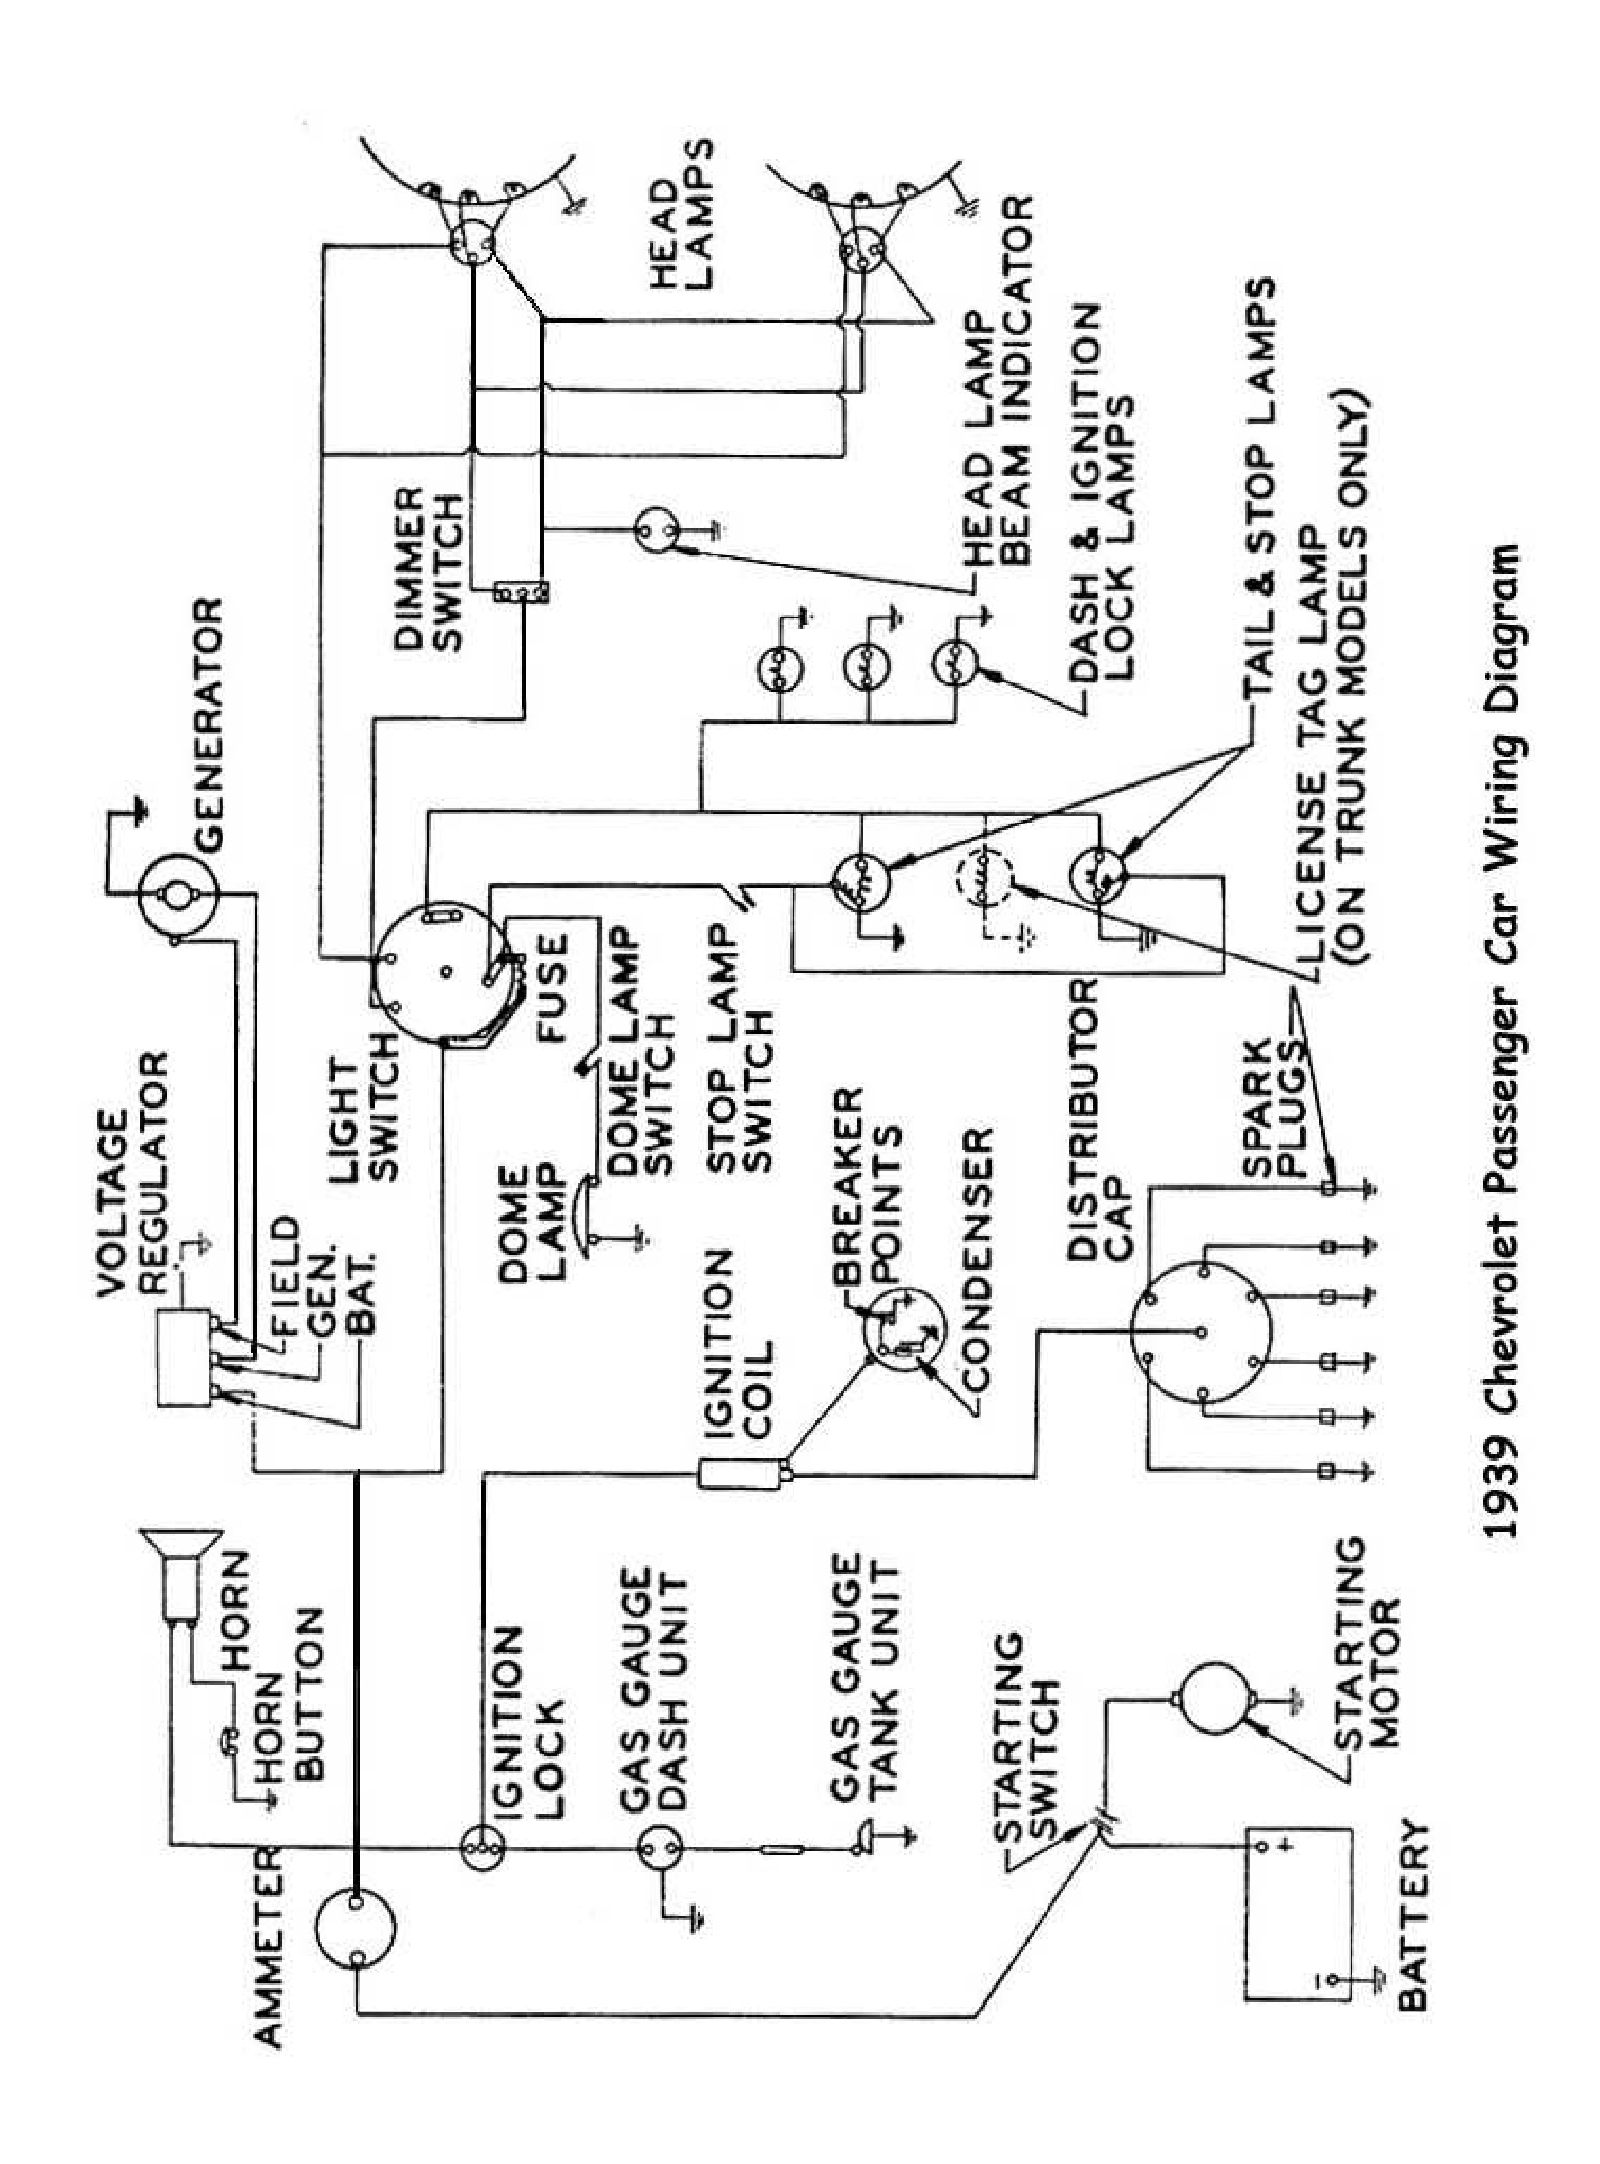 Chevy Wiring diagrams on instrument cluster clock, instrument panel diagram, 09 rubicon instrument cluster wire diagram, instrument cluster schematics, body diagram, 1988 jeep alternator diagram, battery diagram, instrument cluster connector, instrument panel cluster, instrument cluster regulator, instrument cluster voltage, instrument cluster tools, instrument cluster guide, instrument cluster radio, instrument cluster assembly, instrument cluster parts, instrument cluster tractor, instrument cluster cover, instrument cluster repair, instrument cluster motor,